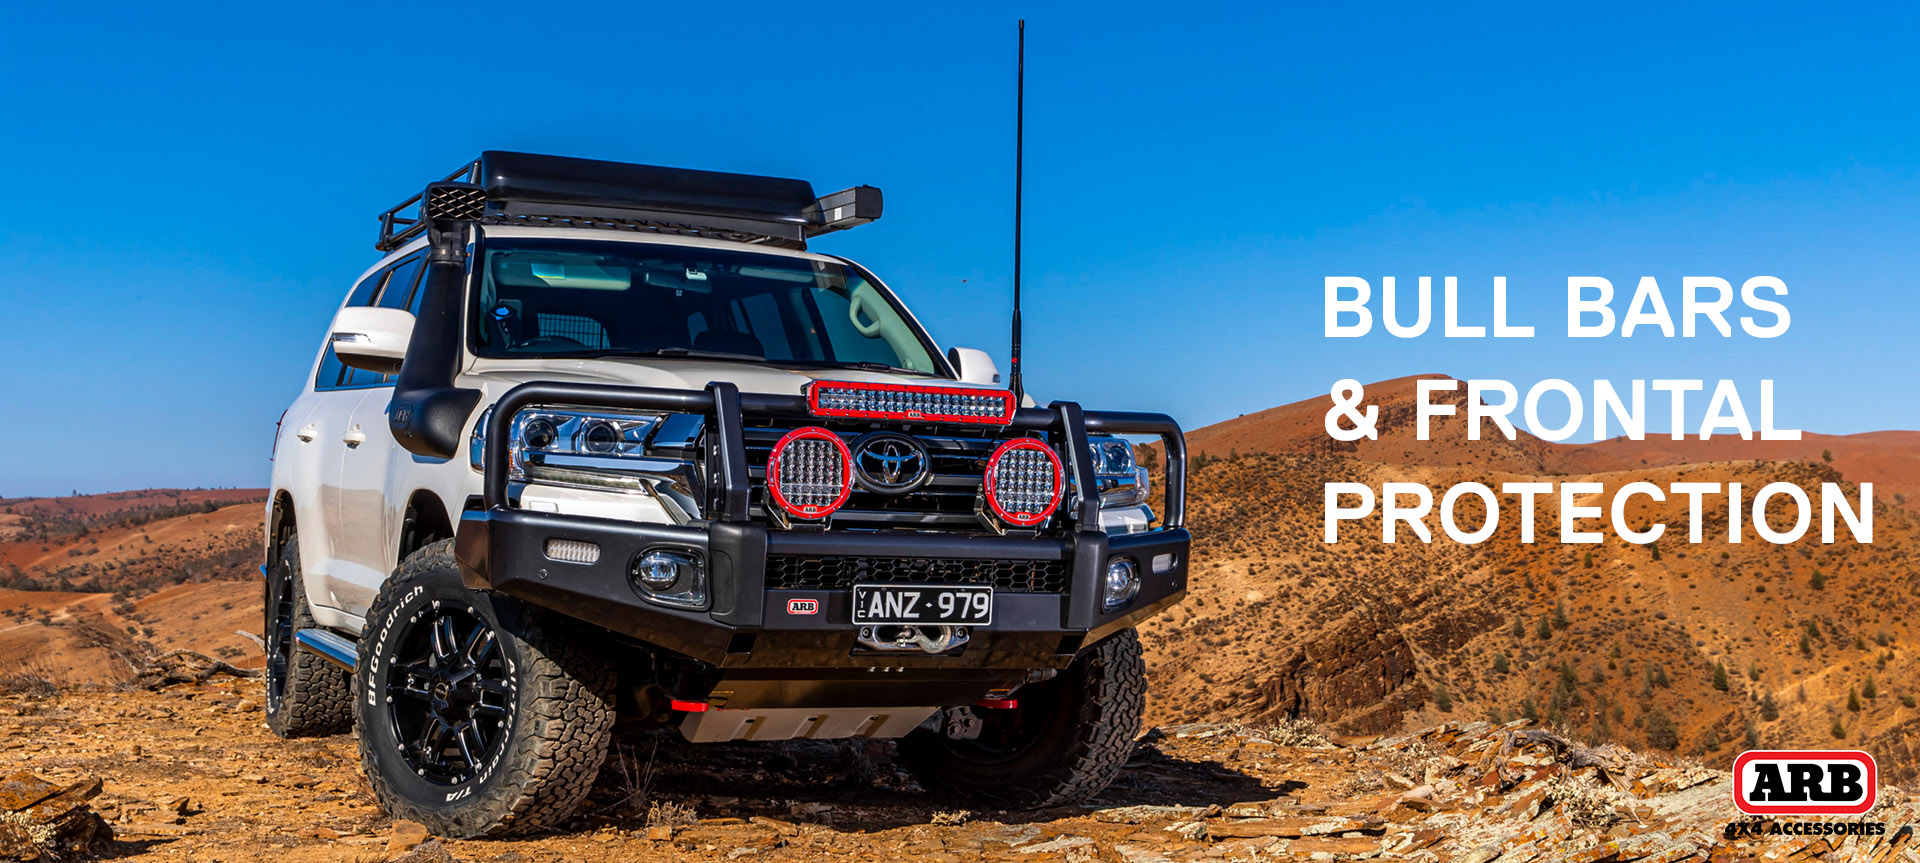 See our range of bull bars and nudge bars from ARB